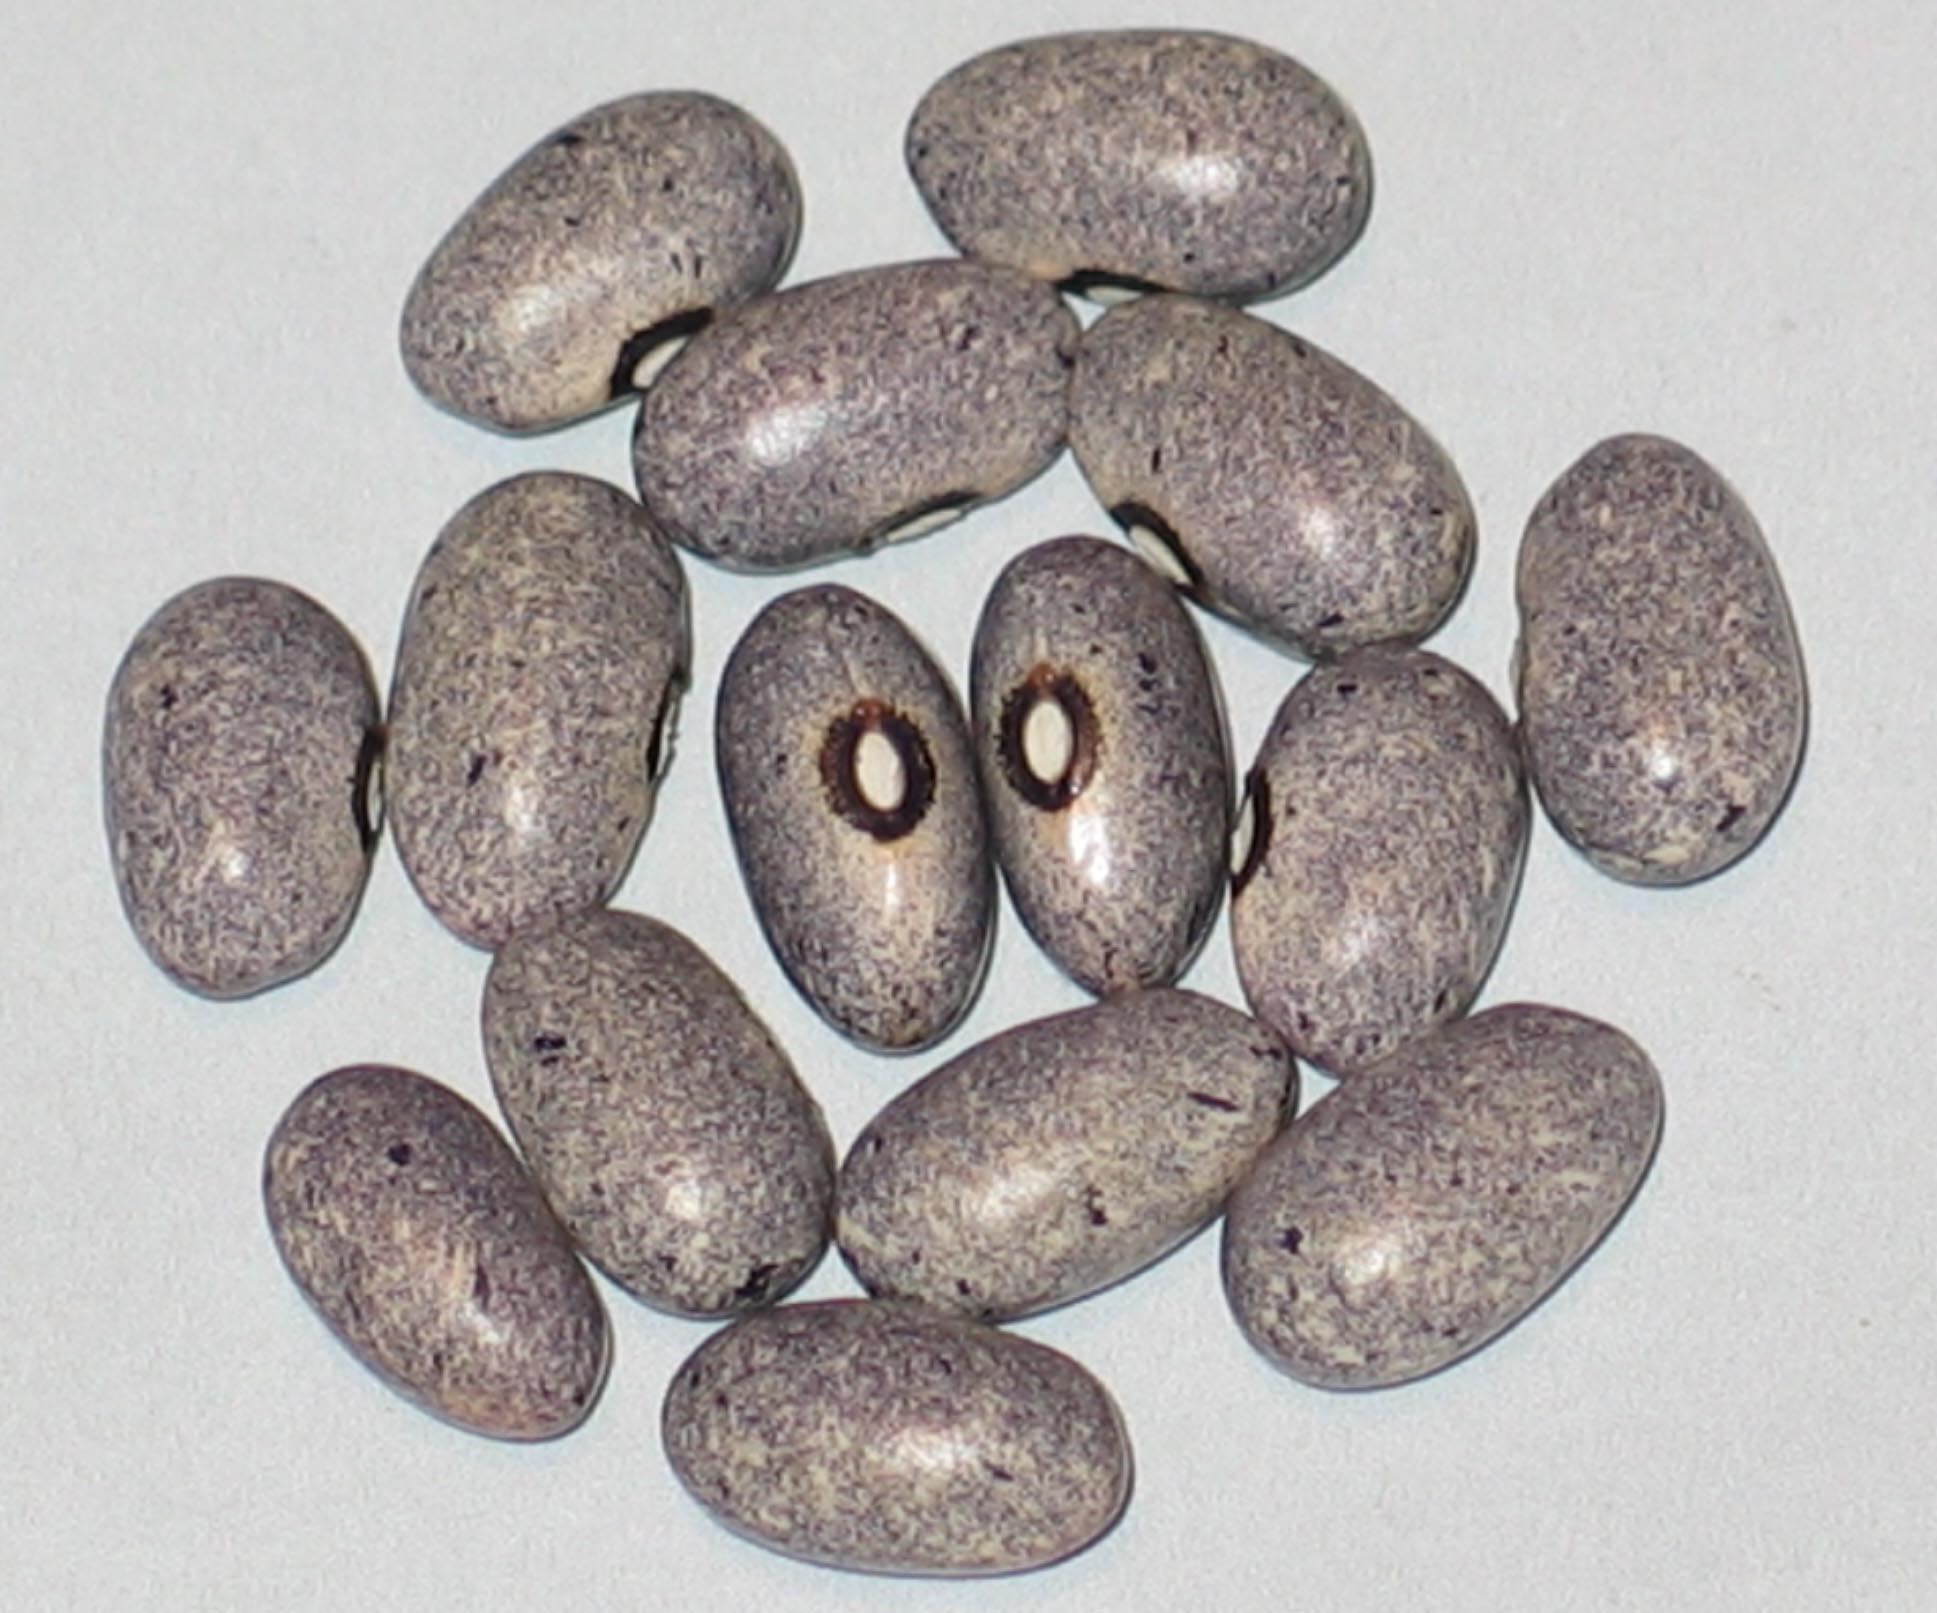 image of Pale Grey Lavender beans